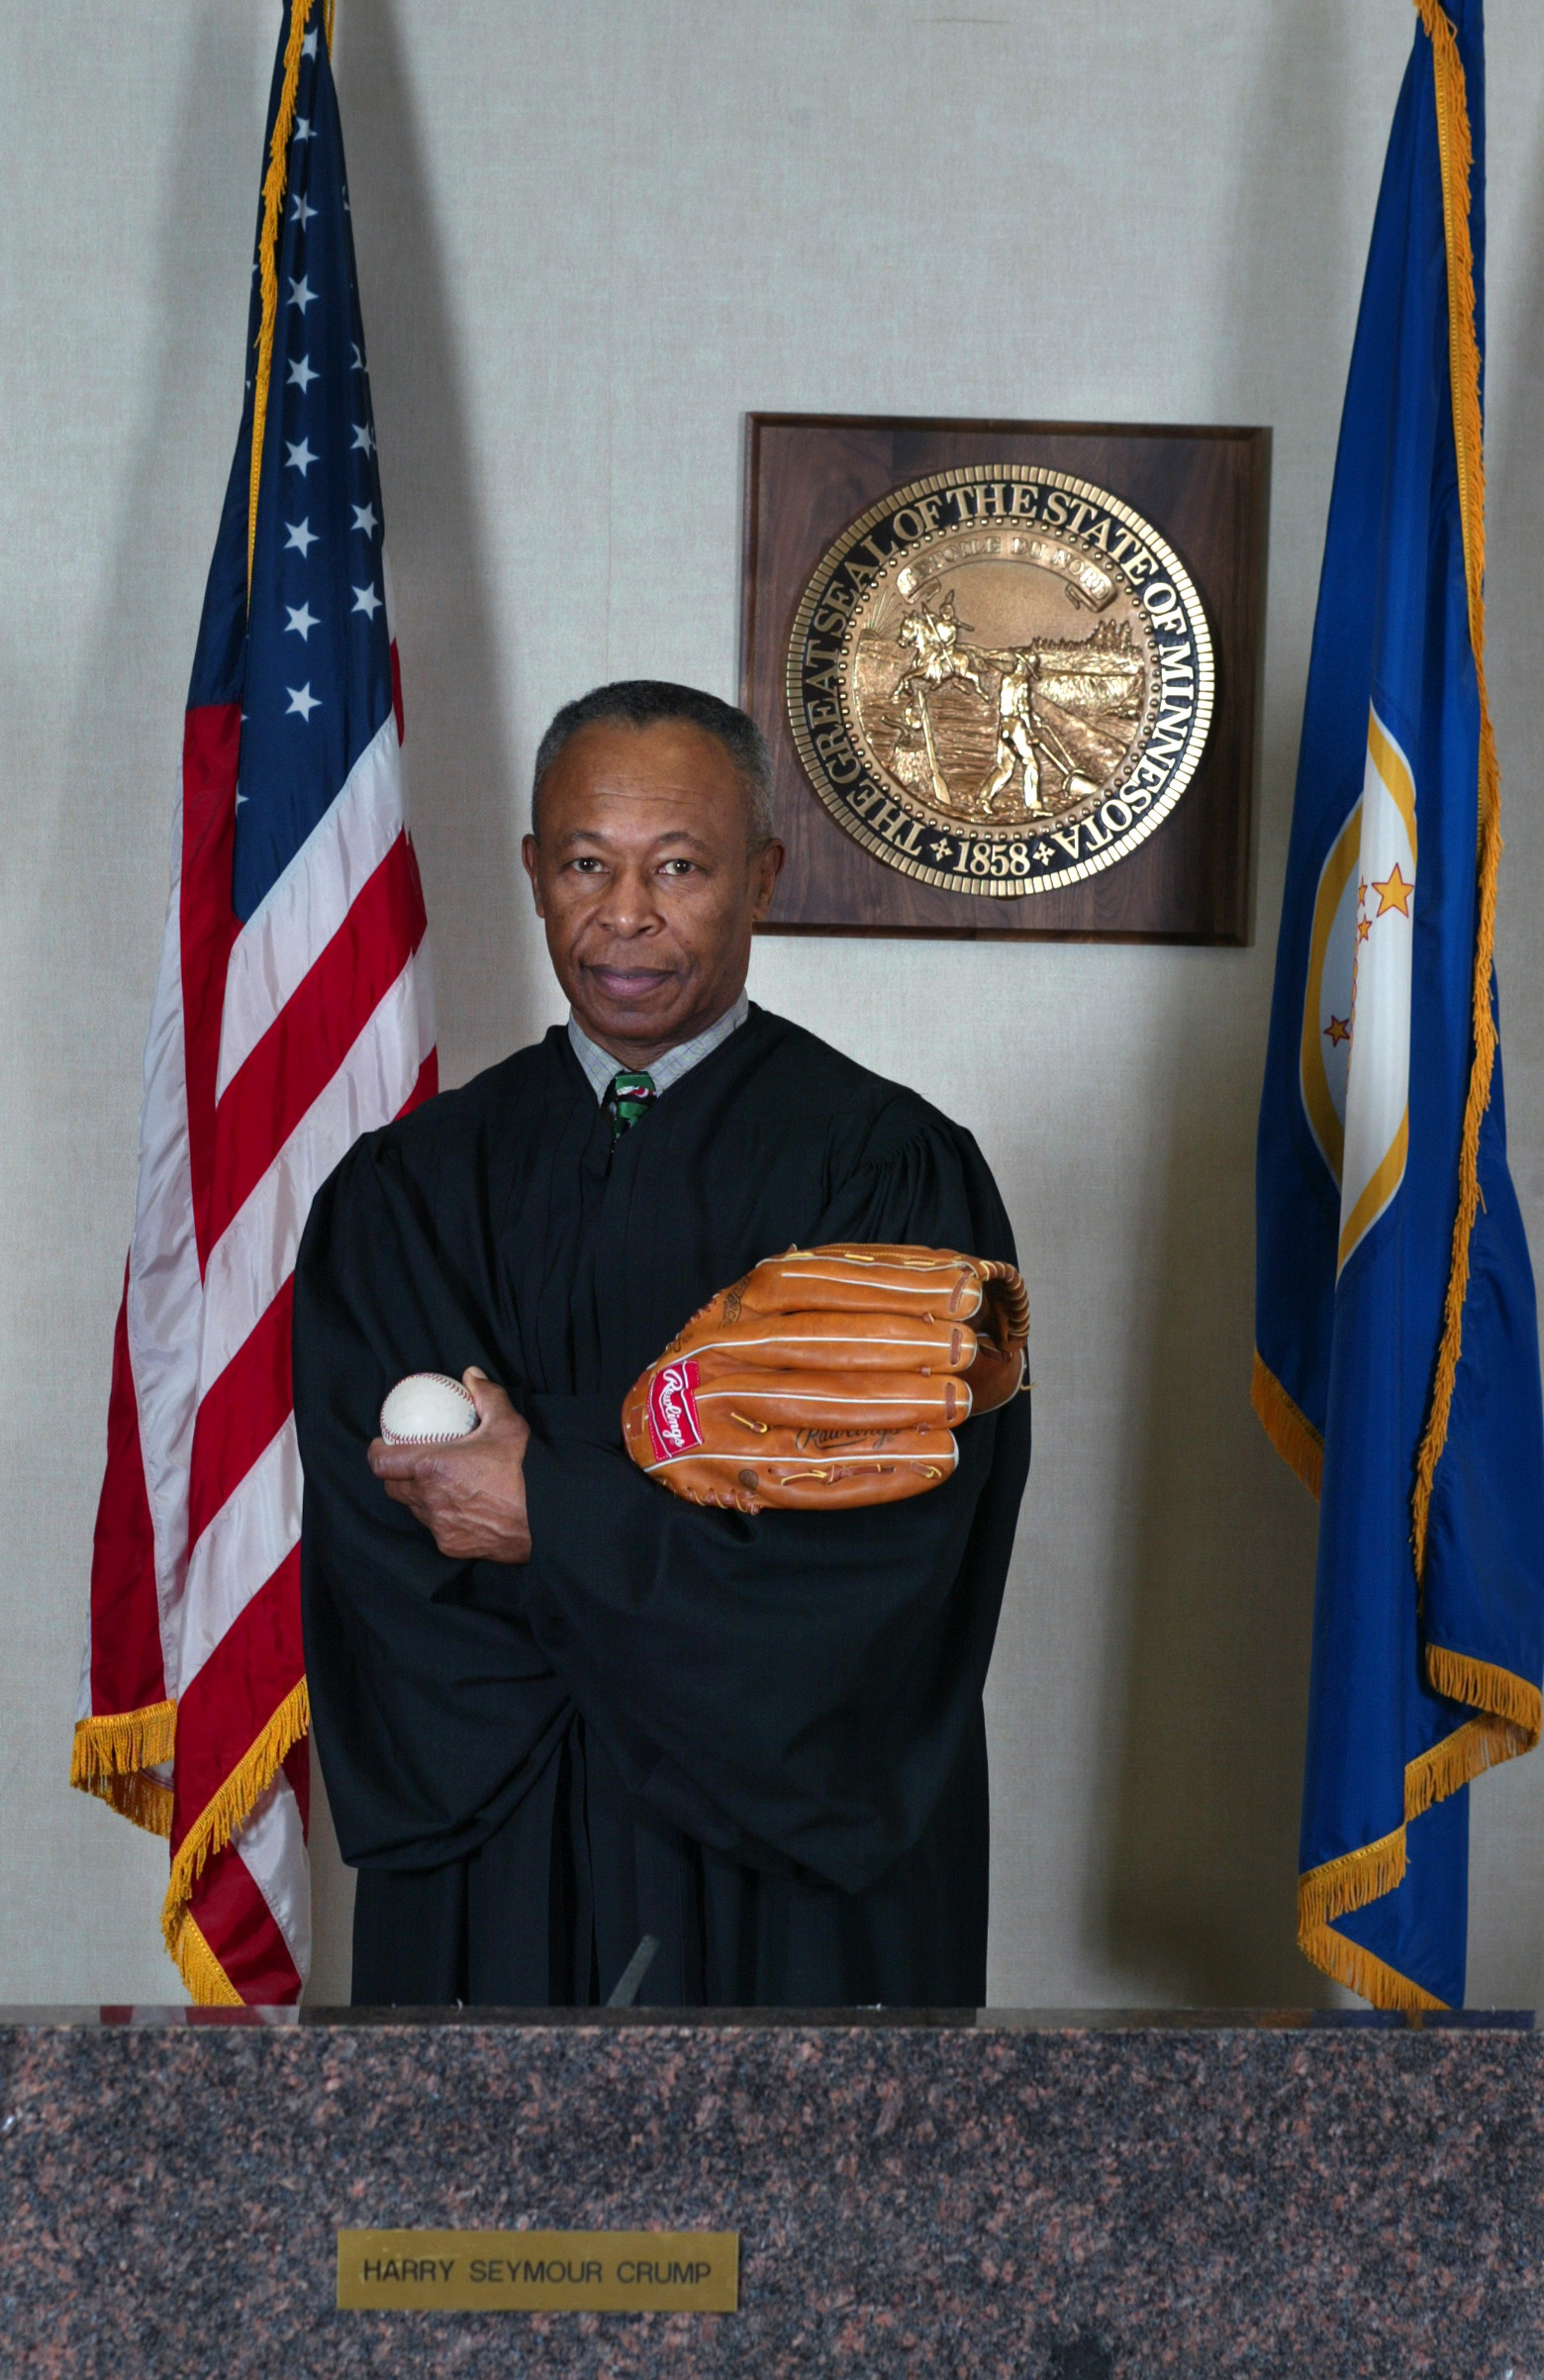 Hennepin County District Judge Harry Crump saved major league baseball in the Twin Cities this year when he ruled that the Minnesota Twins were a community asset and could not be contracted. The ruling survived the state appeals court and resulted in the